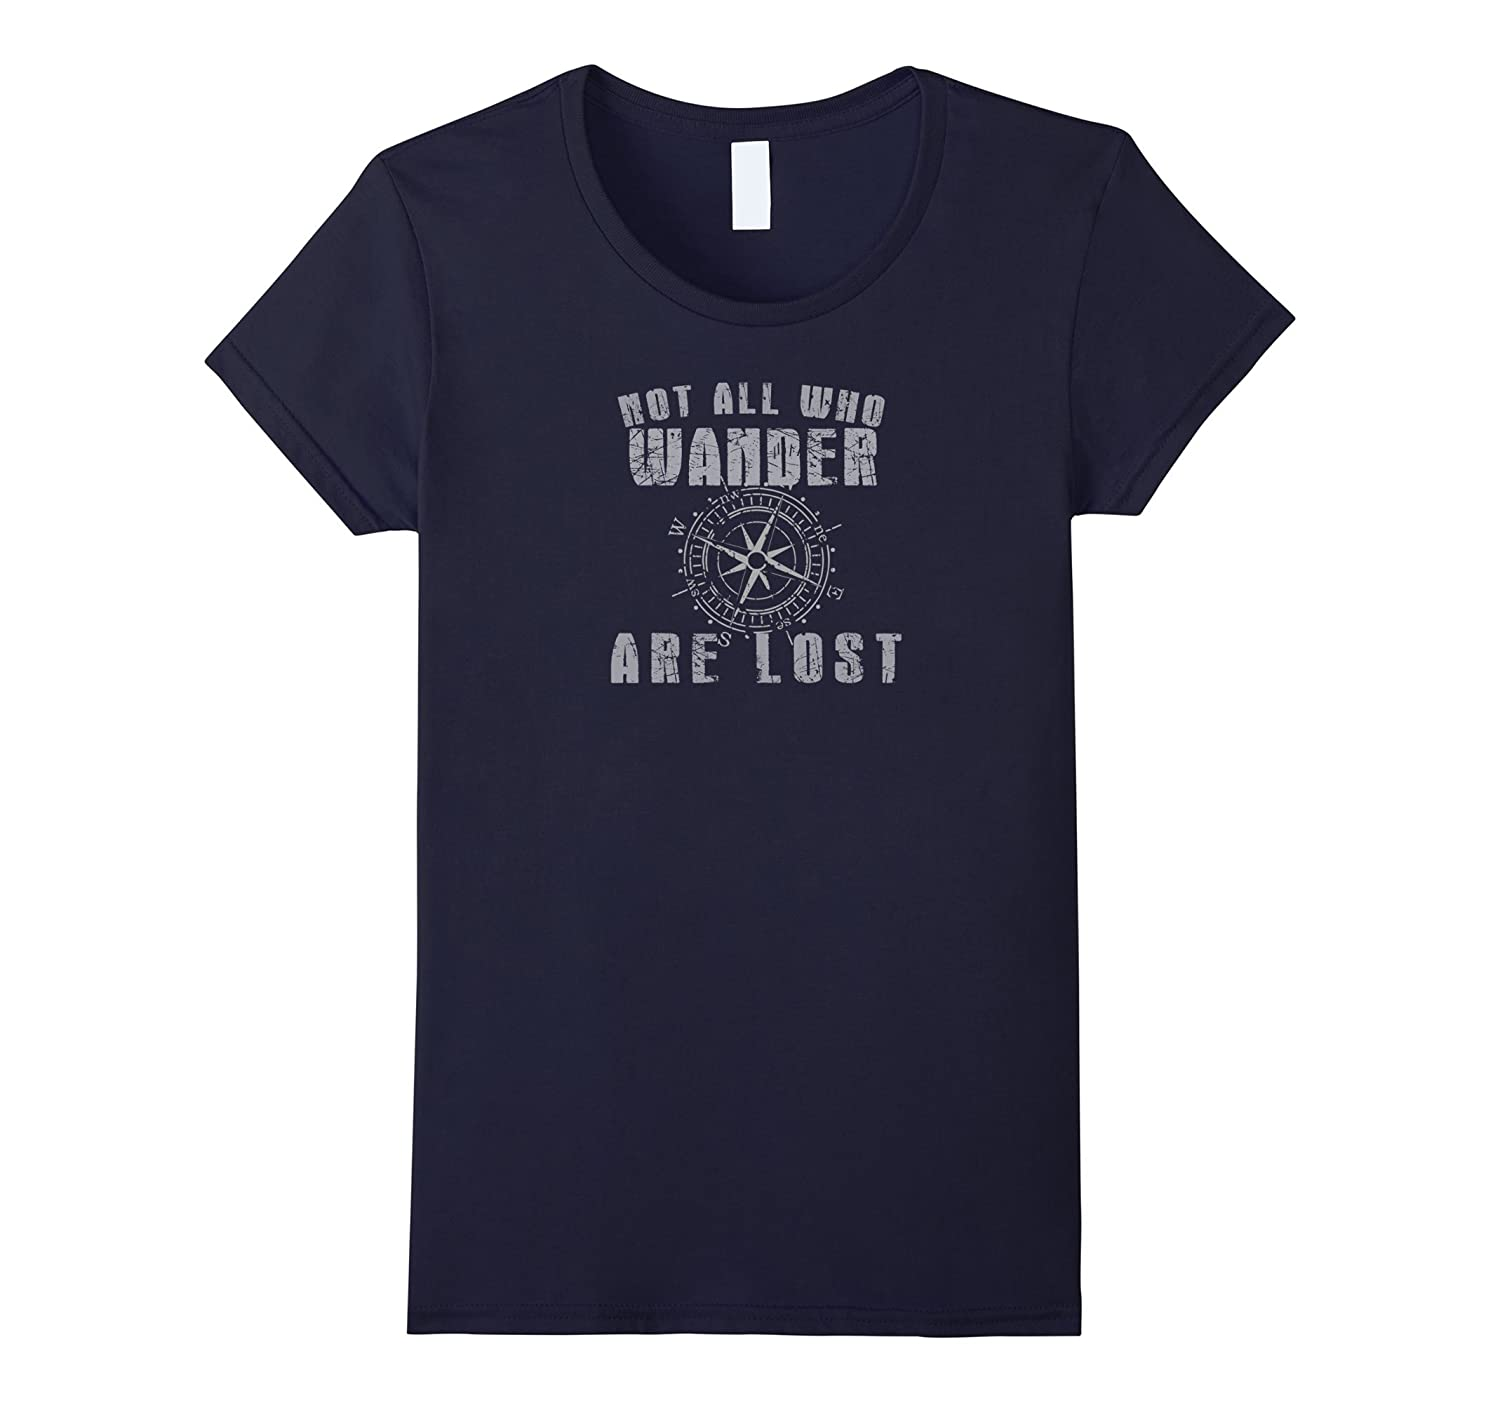 Not all who wander are lost – compass shirt